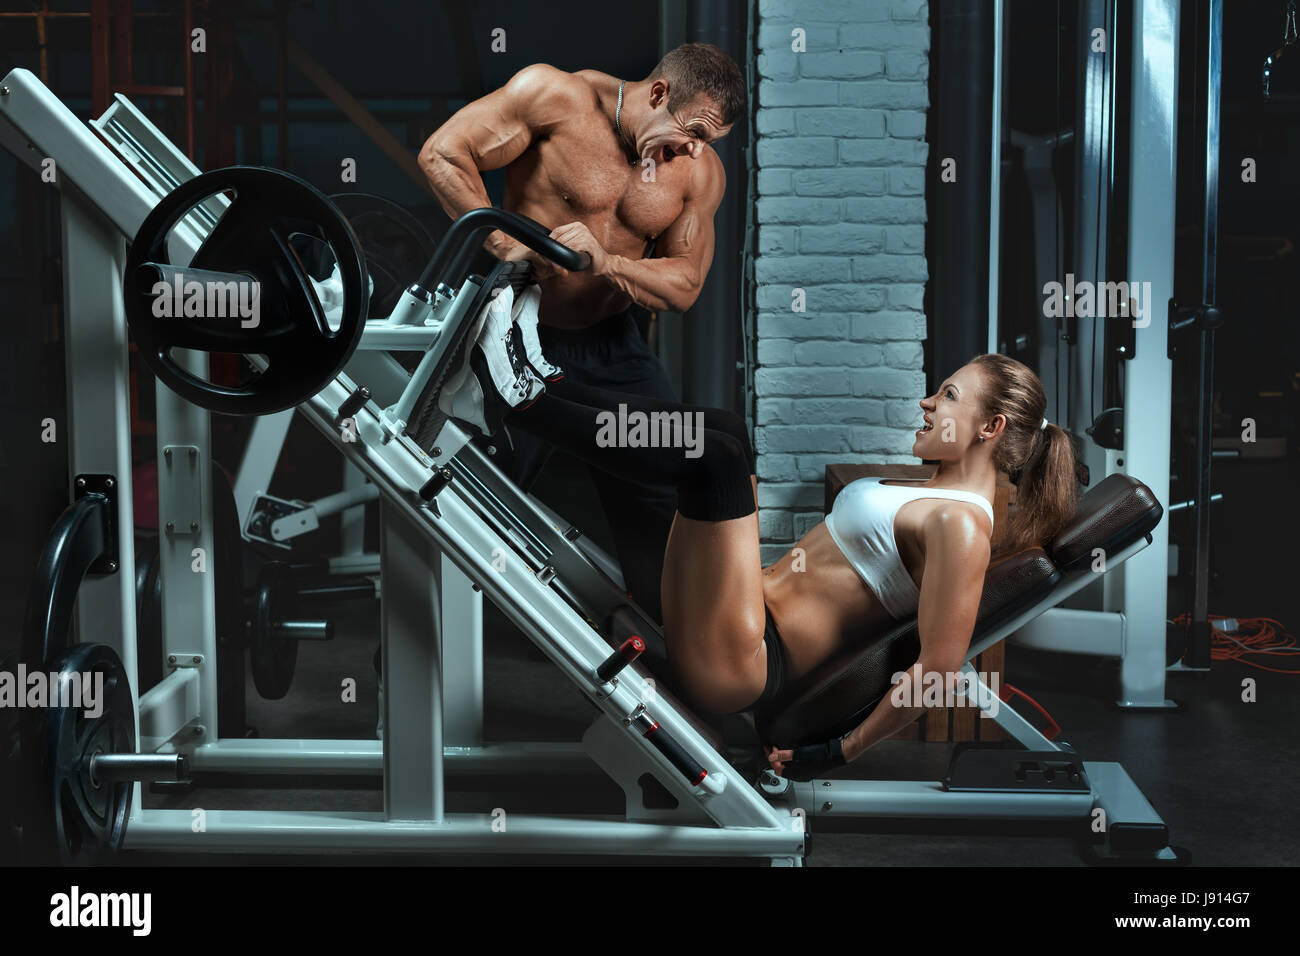 Man bodybuilder trains the a woman. Woman on the machine to swing your leg muscles. - Stock Image